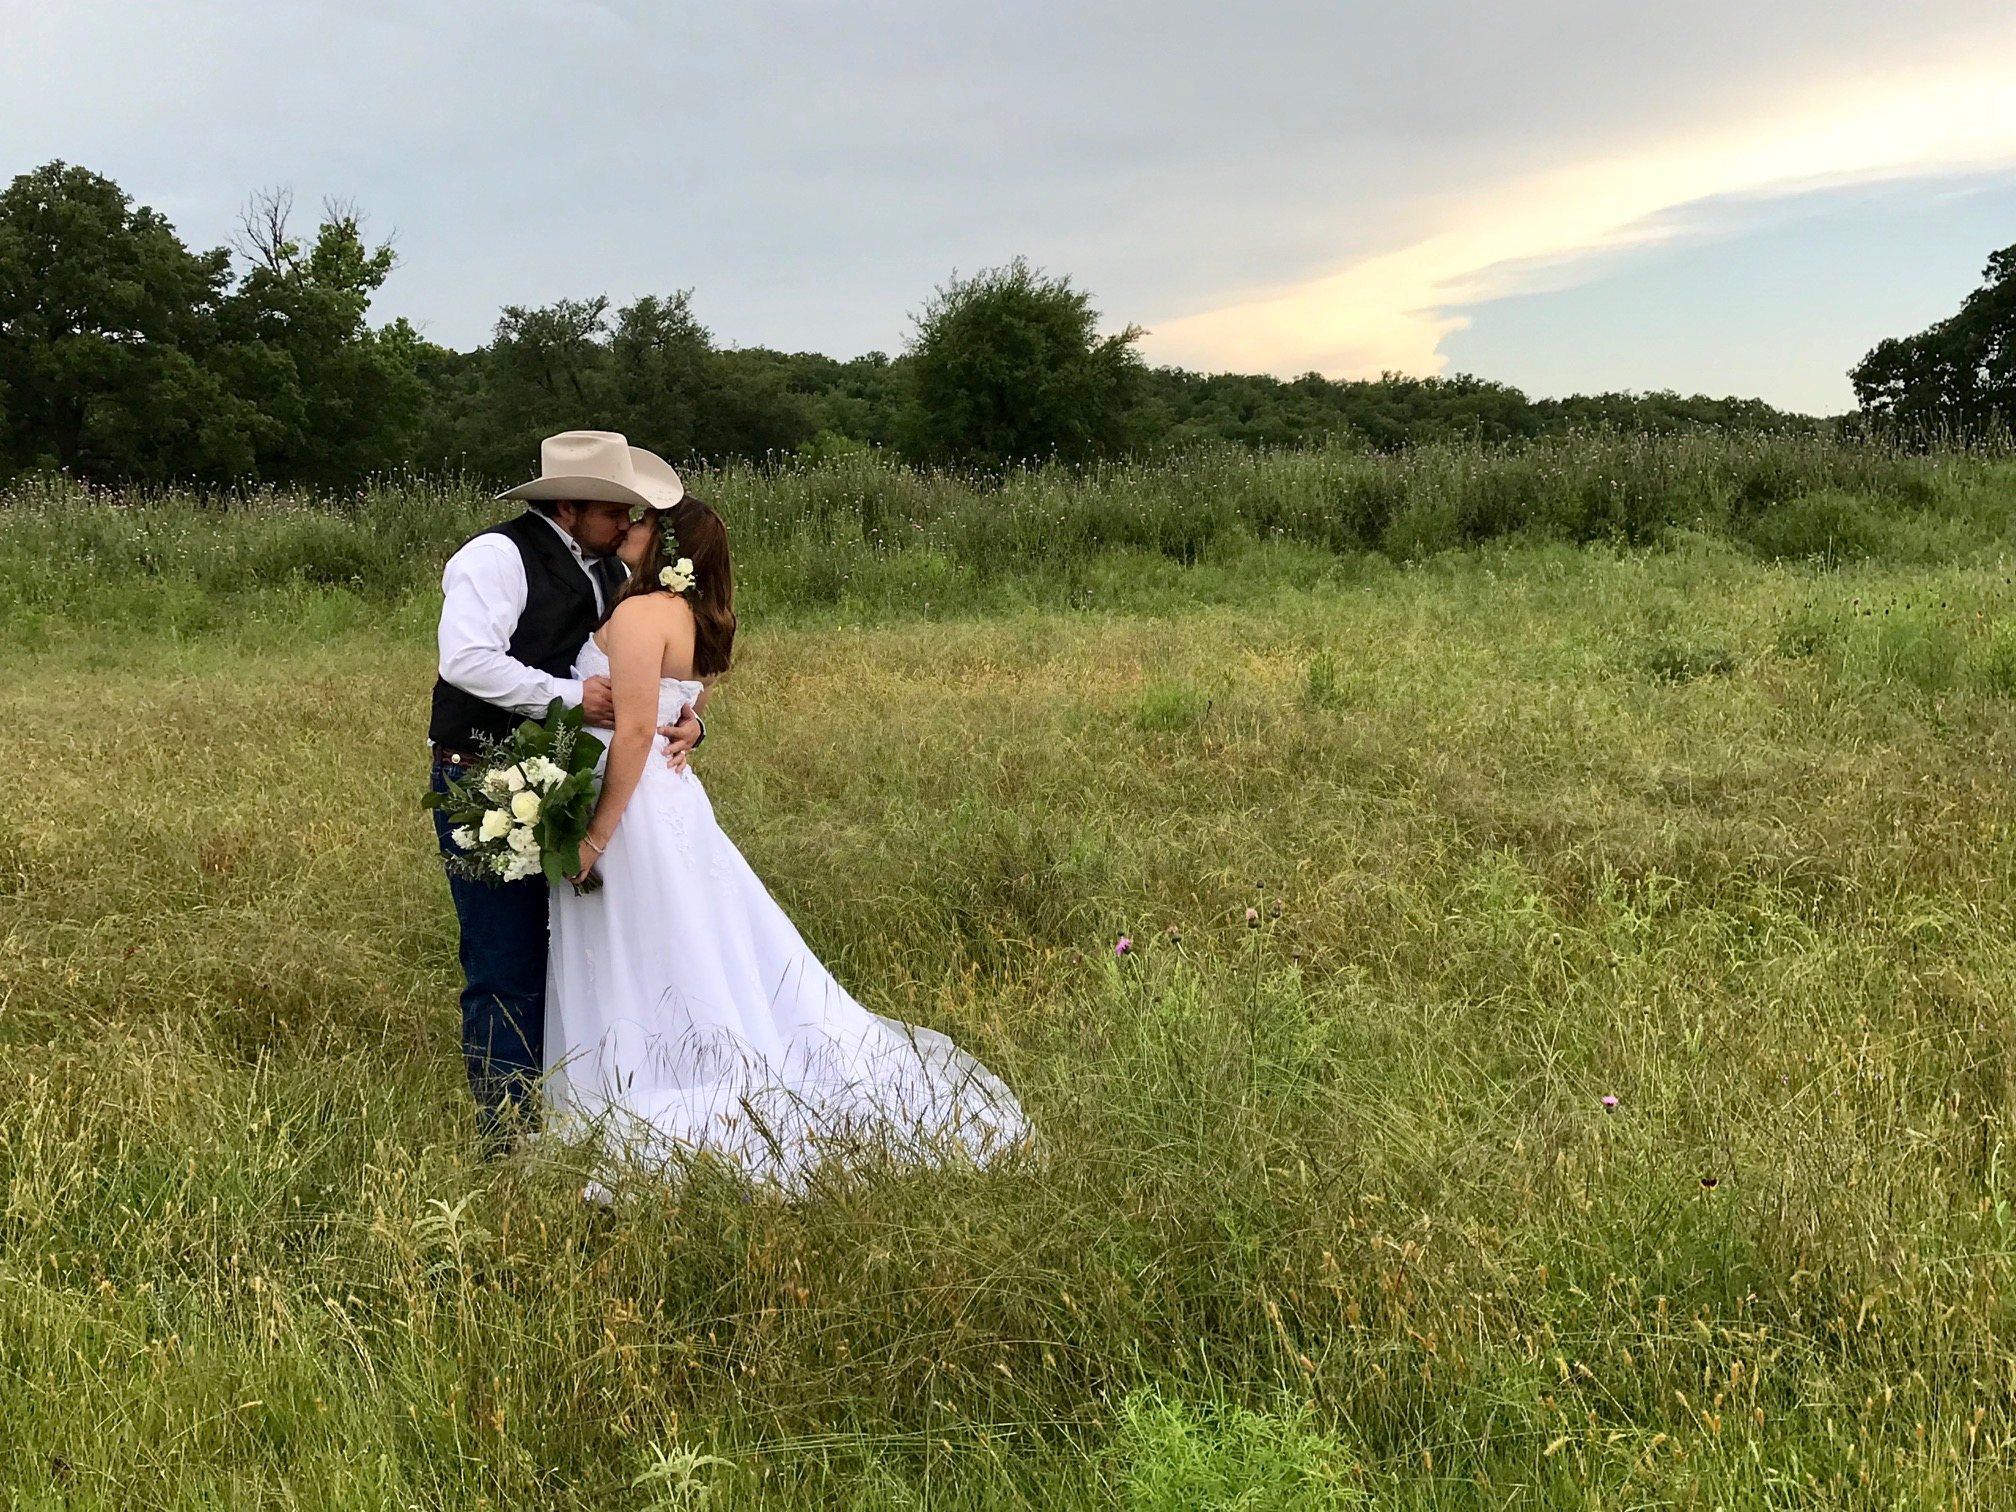 eloping couple kissing in a field in Texas